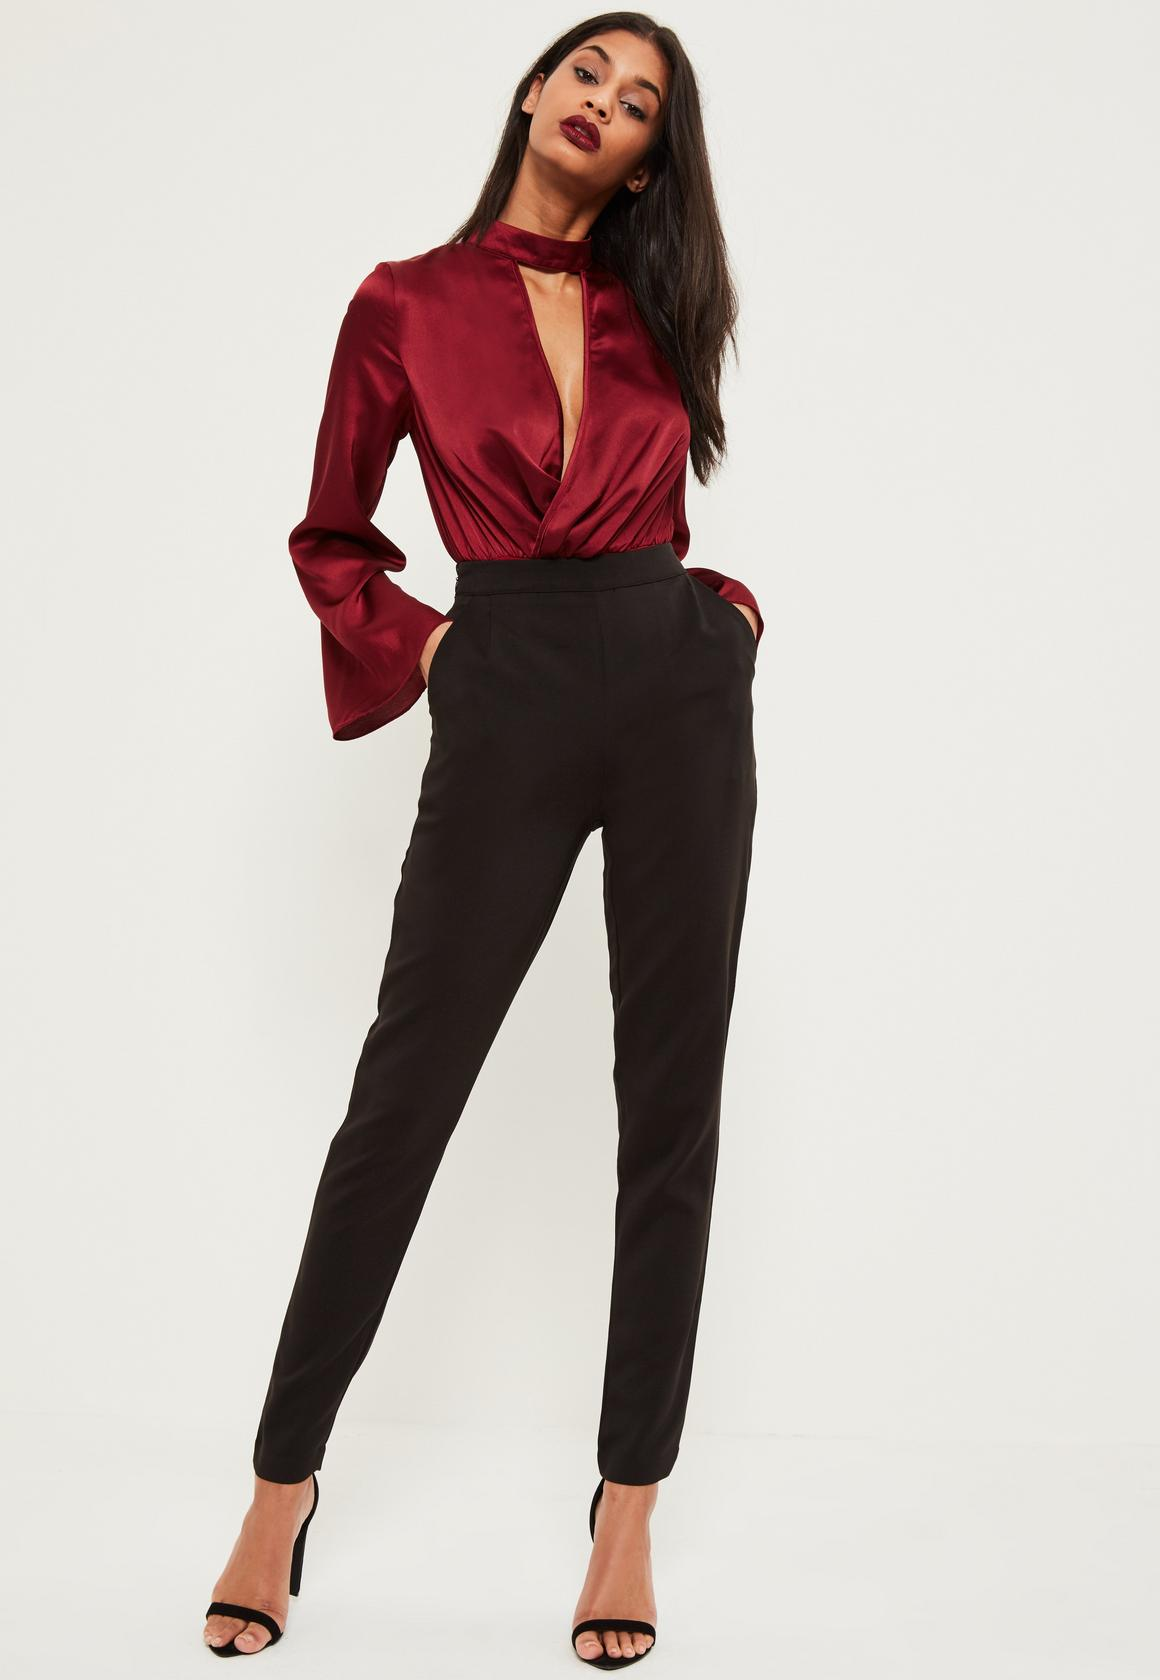 tall black cigarette trousers. previous next aedreqx